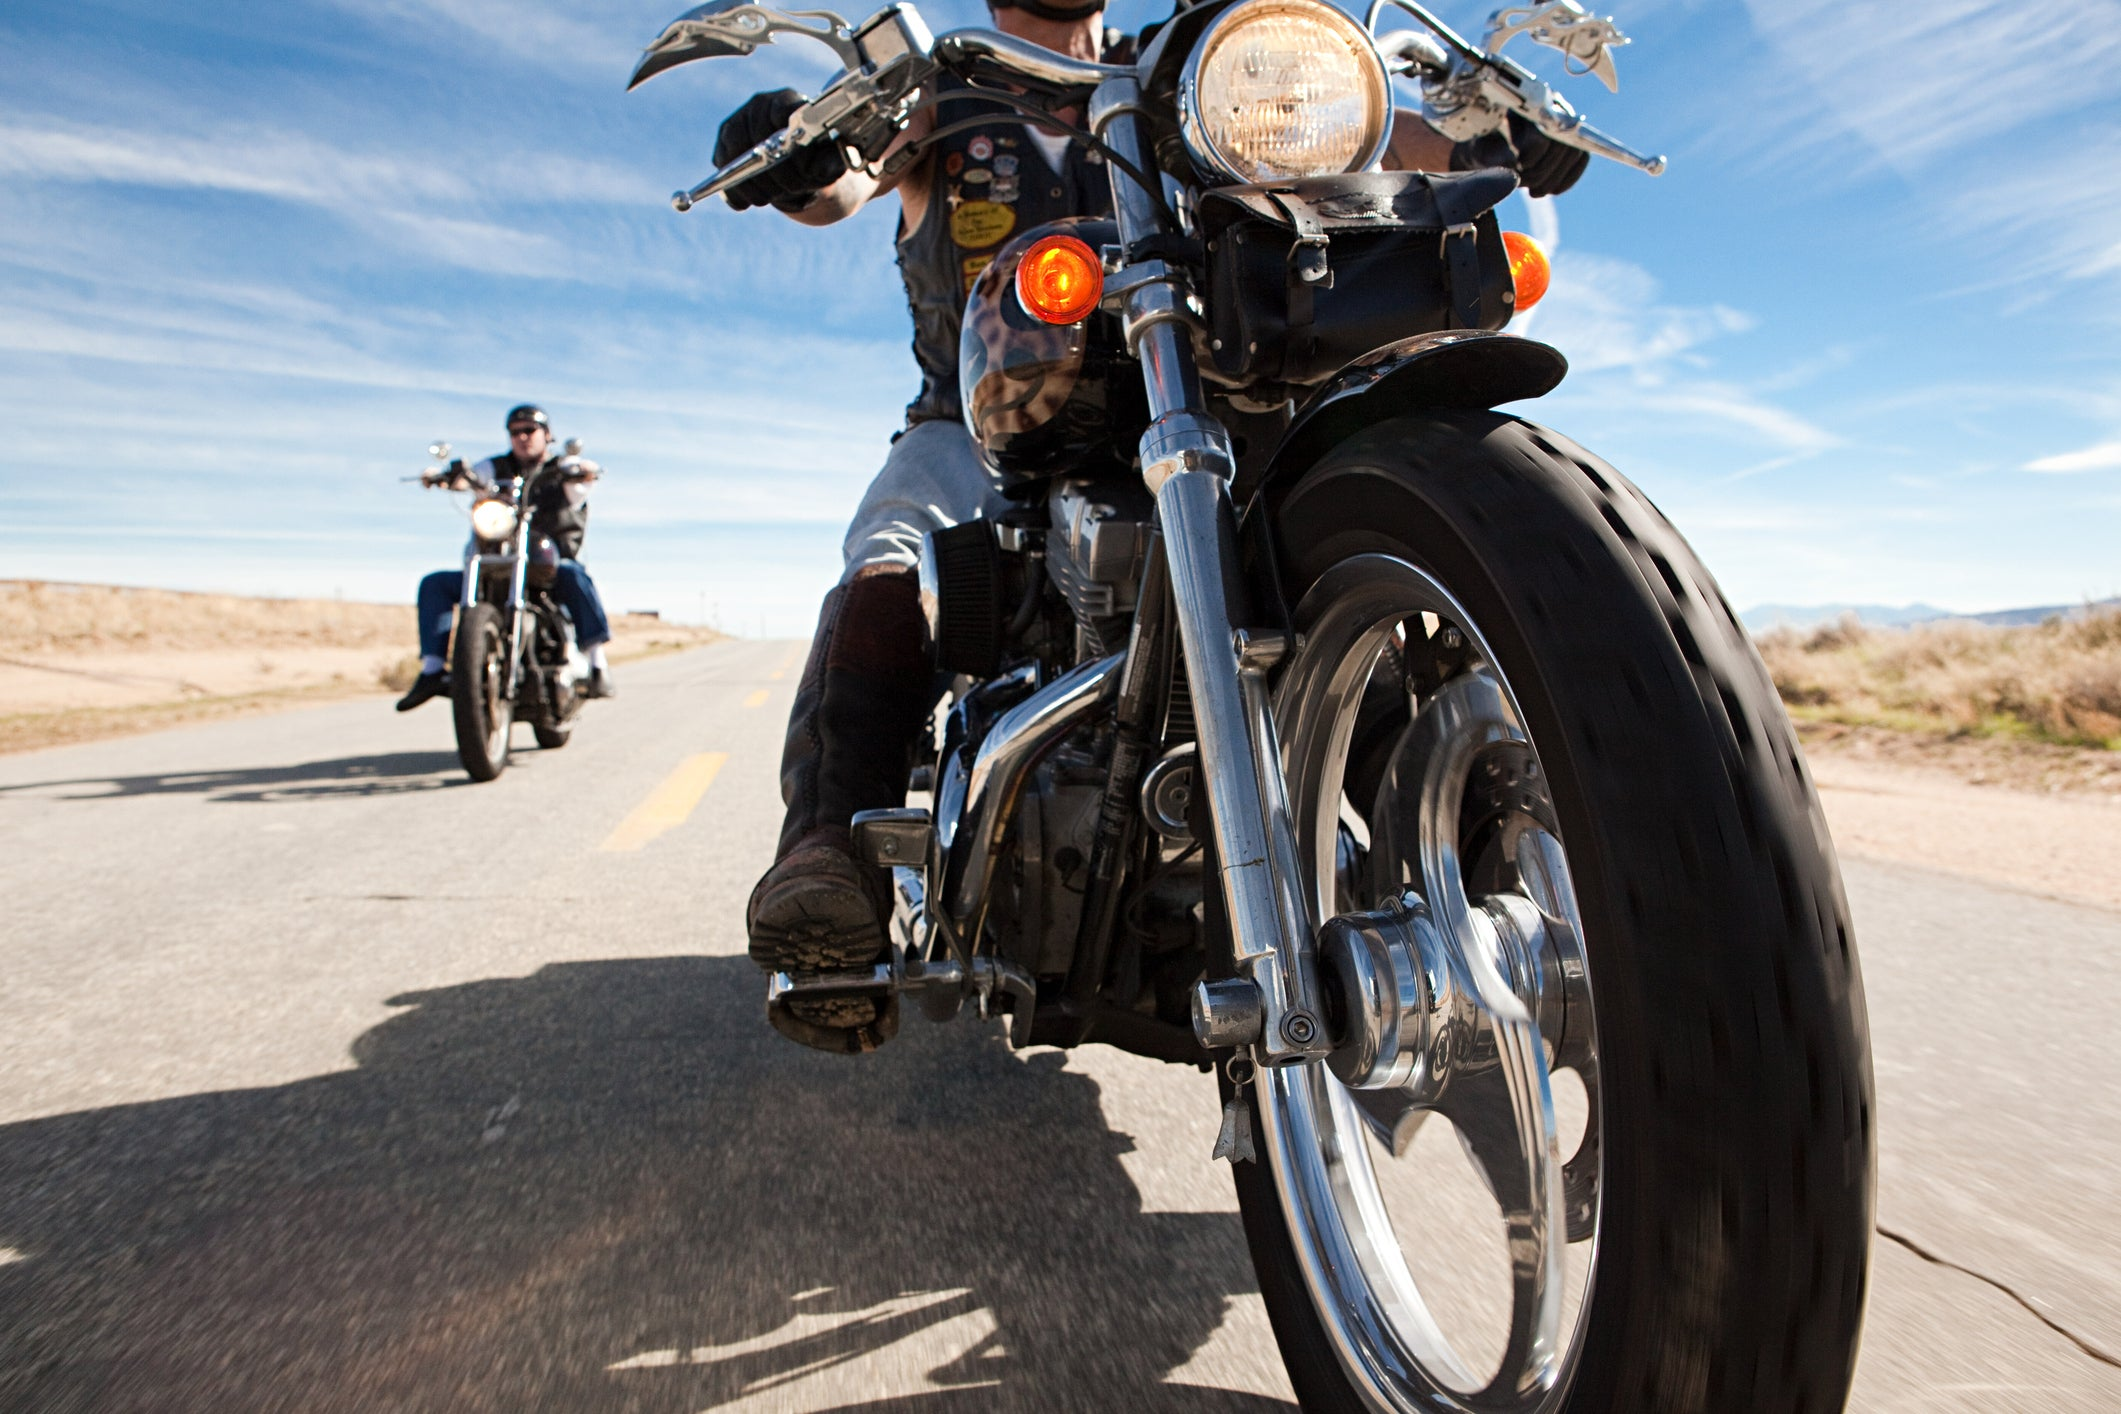 12 Motorcycle Statistics That'll Floor You | The Motley Fool